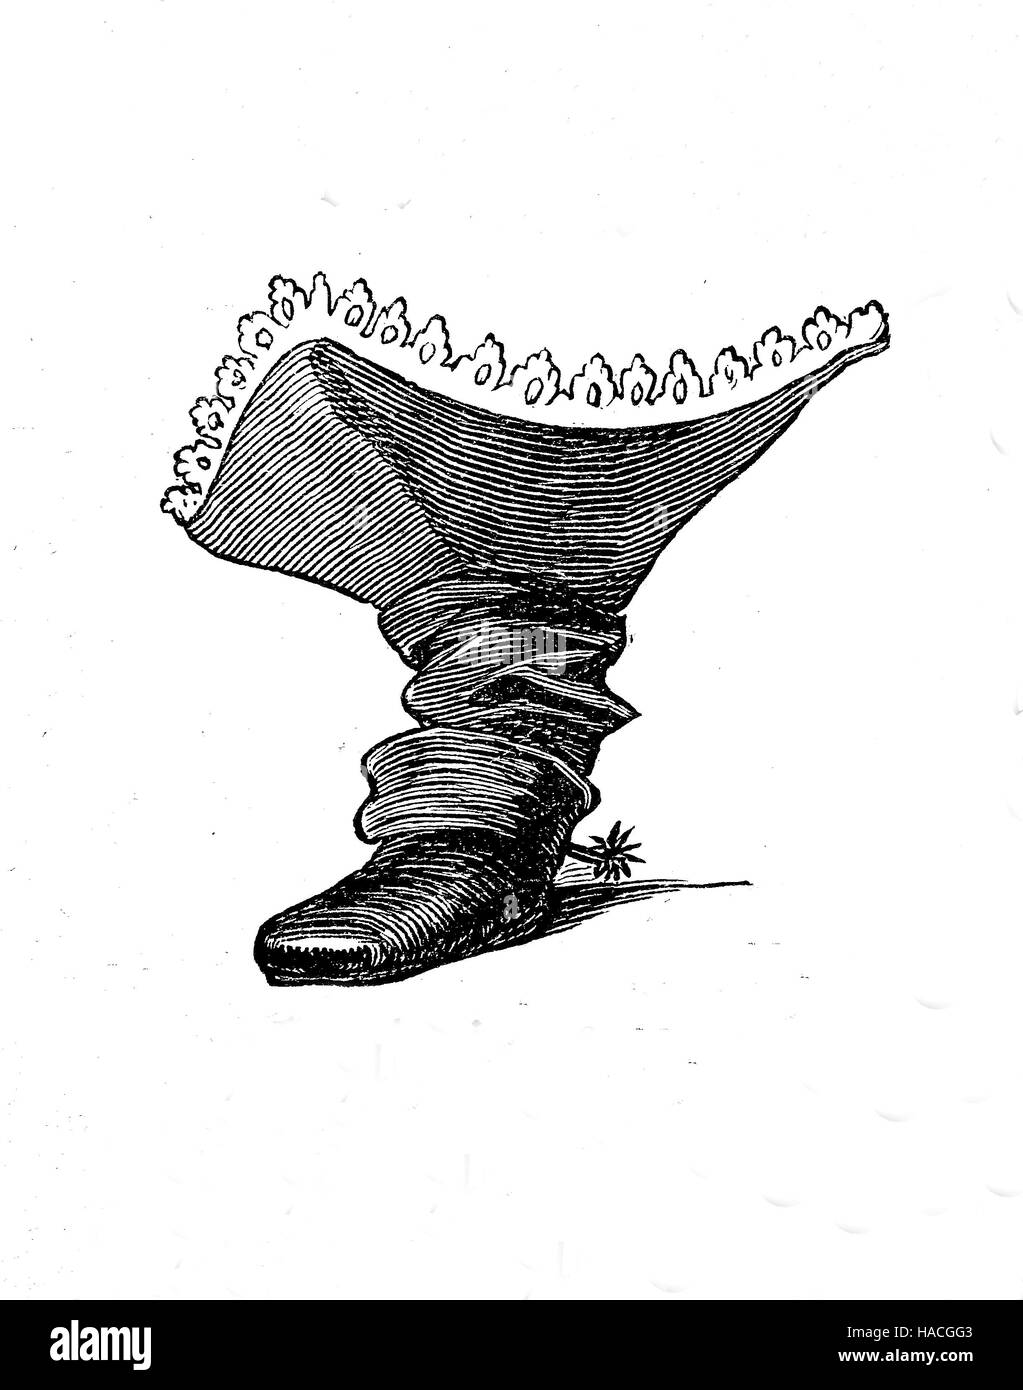 Shoes, fashion of the past. France, 1600 - 1700, boots of a fop or fashion-monger, with lances, historic illustration, - Stock Image